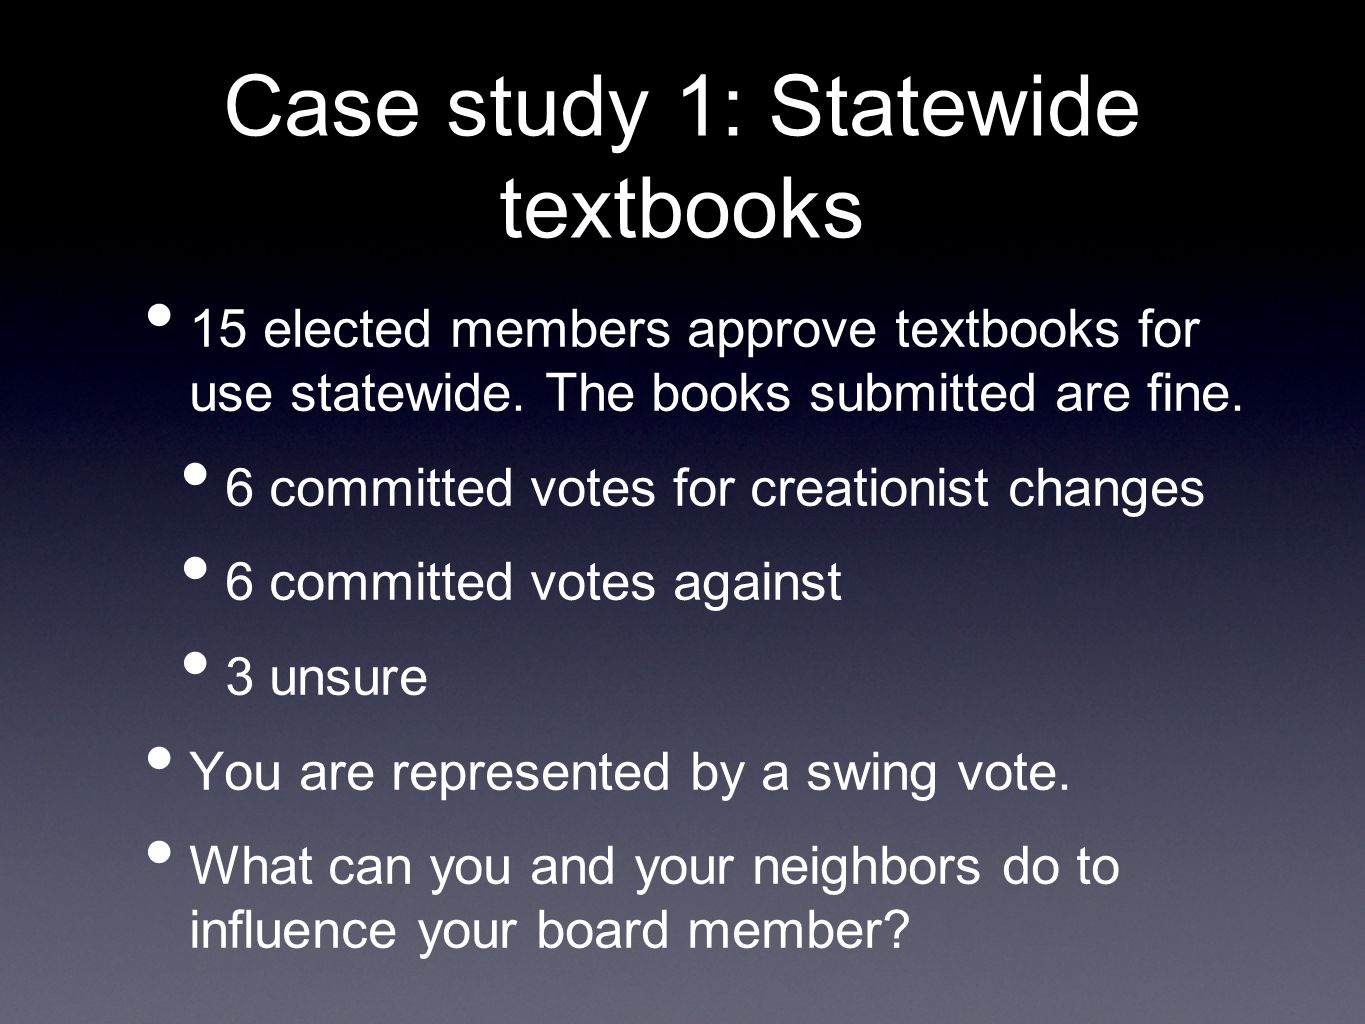 Case study 1: Statewide textbooks 15 elected members approve textbooks for use statewide.